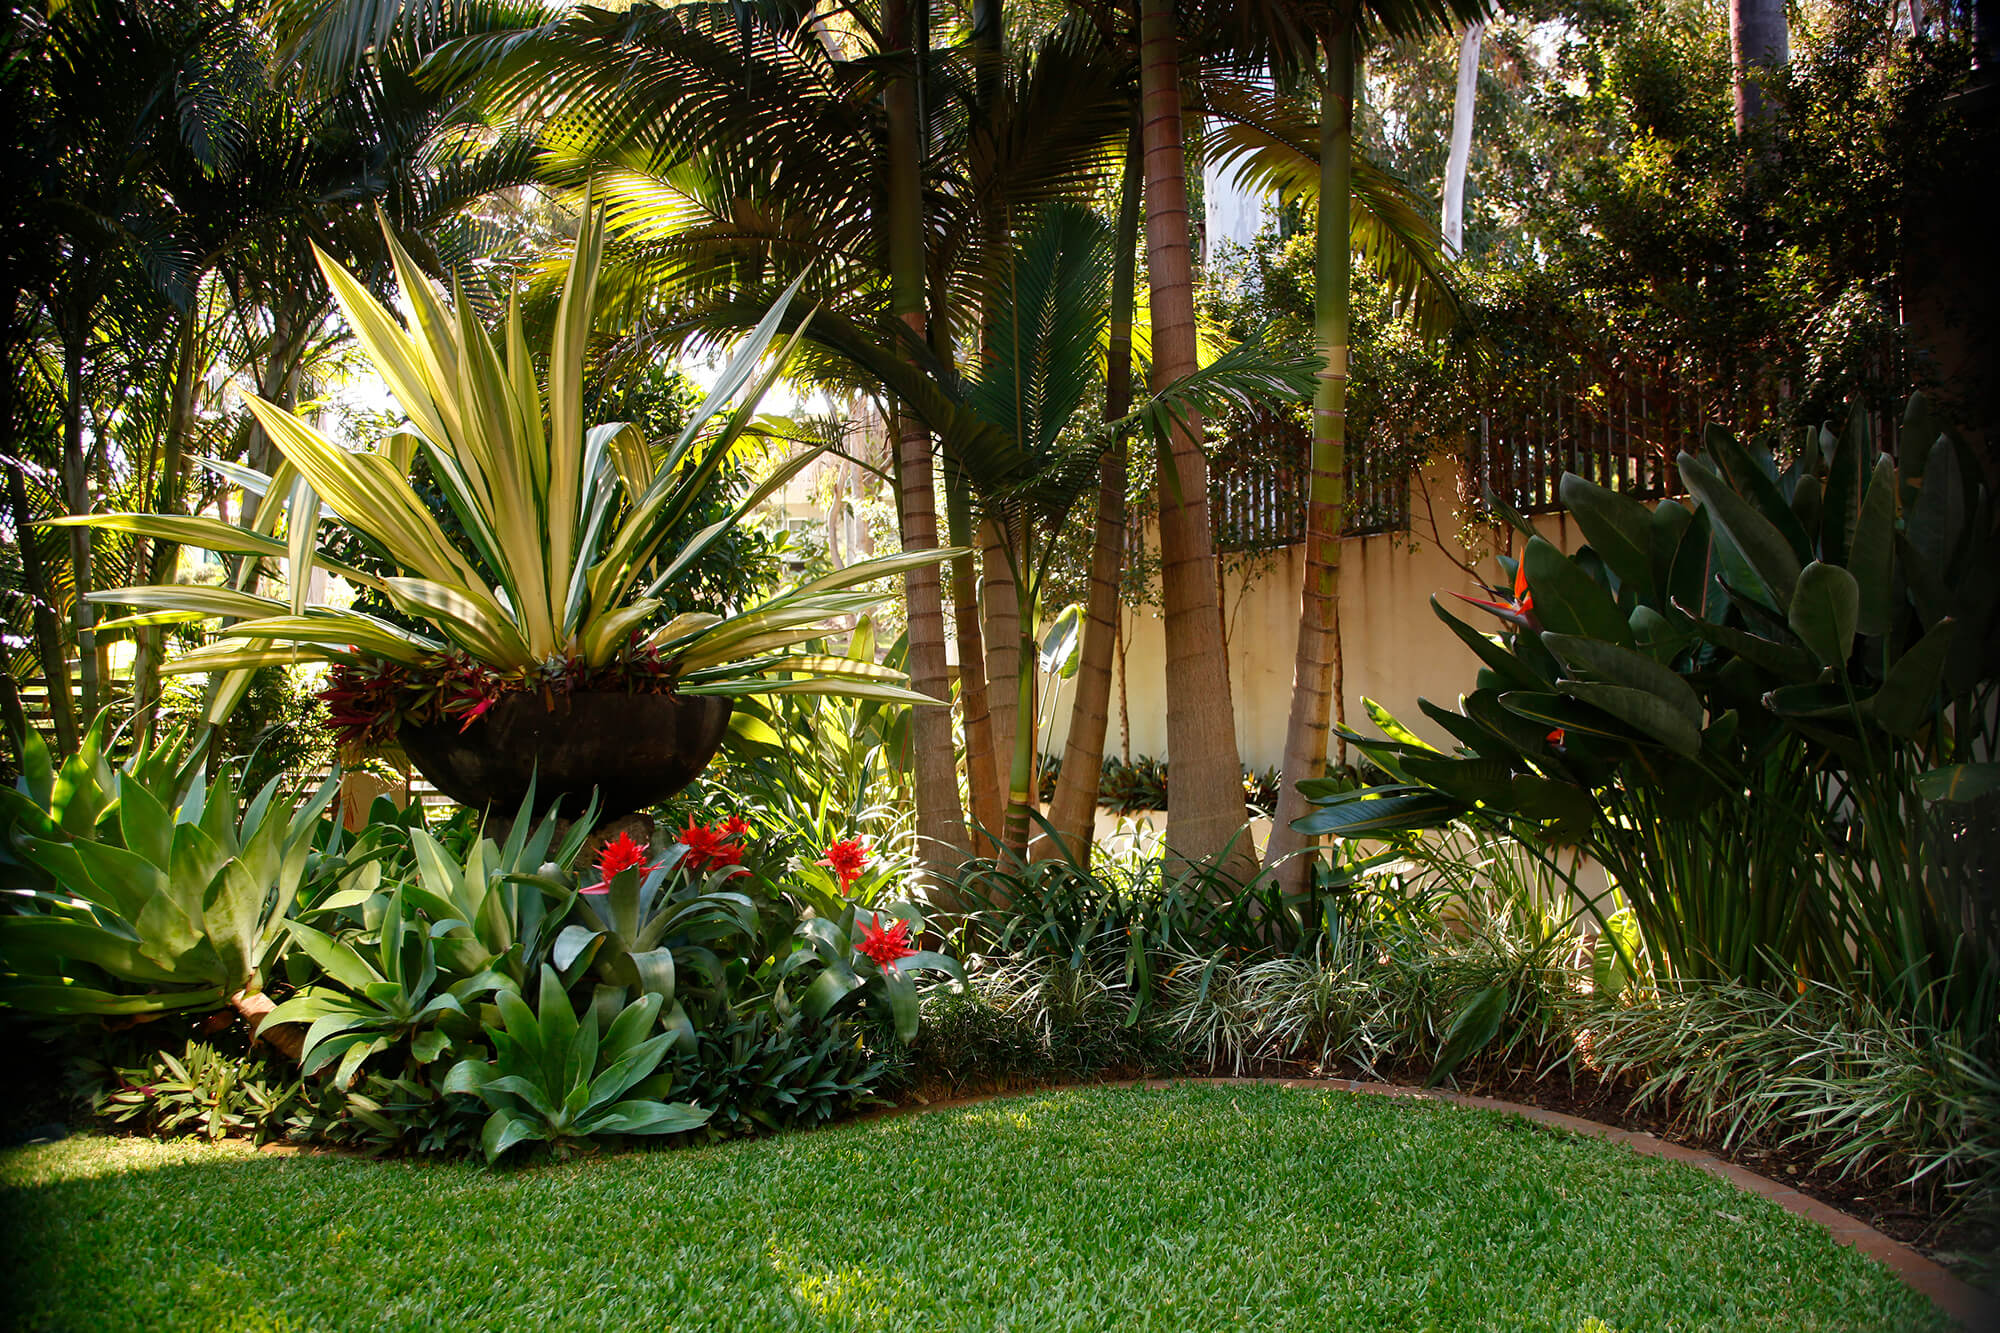 Tropical garden coorparoo boss gardenscapes for Landscape gardeners brisbane